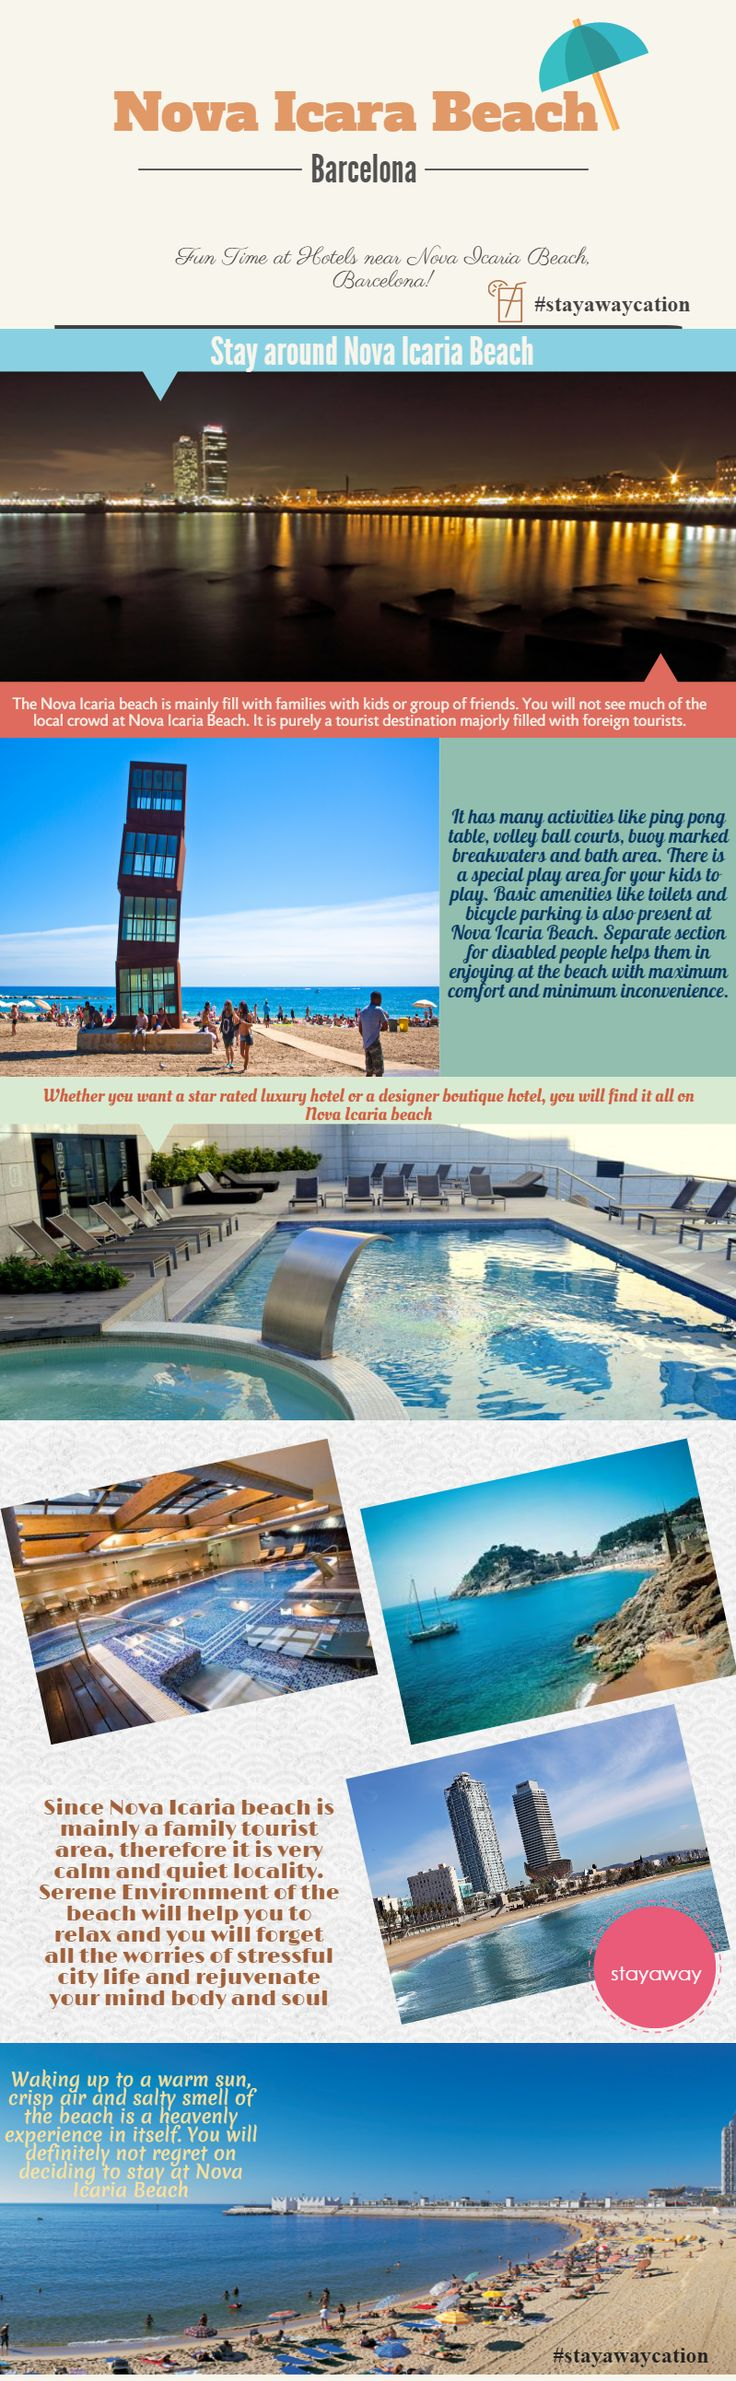 Find all hotels near Nova Icaria Beach Barcelona through stayaway.com. Have a perfect stayawaycation! #HotelsnearNovaIcariabeachBarcelona #HotelsnearBarcelonaBeach #HotelsinBarcelonanearfiragranvia #HotelsnearBarcelonaRailwaystation #NovaIcariabeachaccommodation #LowbudgethotelsnearNovaIcariabeachbarcelona  #budgethotelsnearBarcelona #TopHotelsinSpain #CheapbudgethotelsinBarcelonaspain #HotelsBarcelonaairport #Stayaway